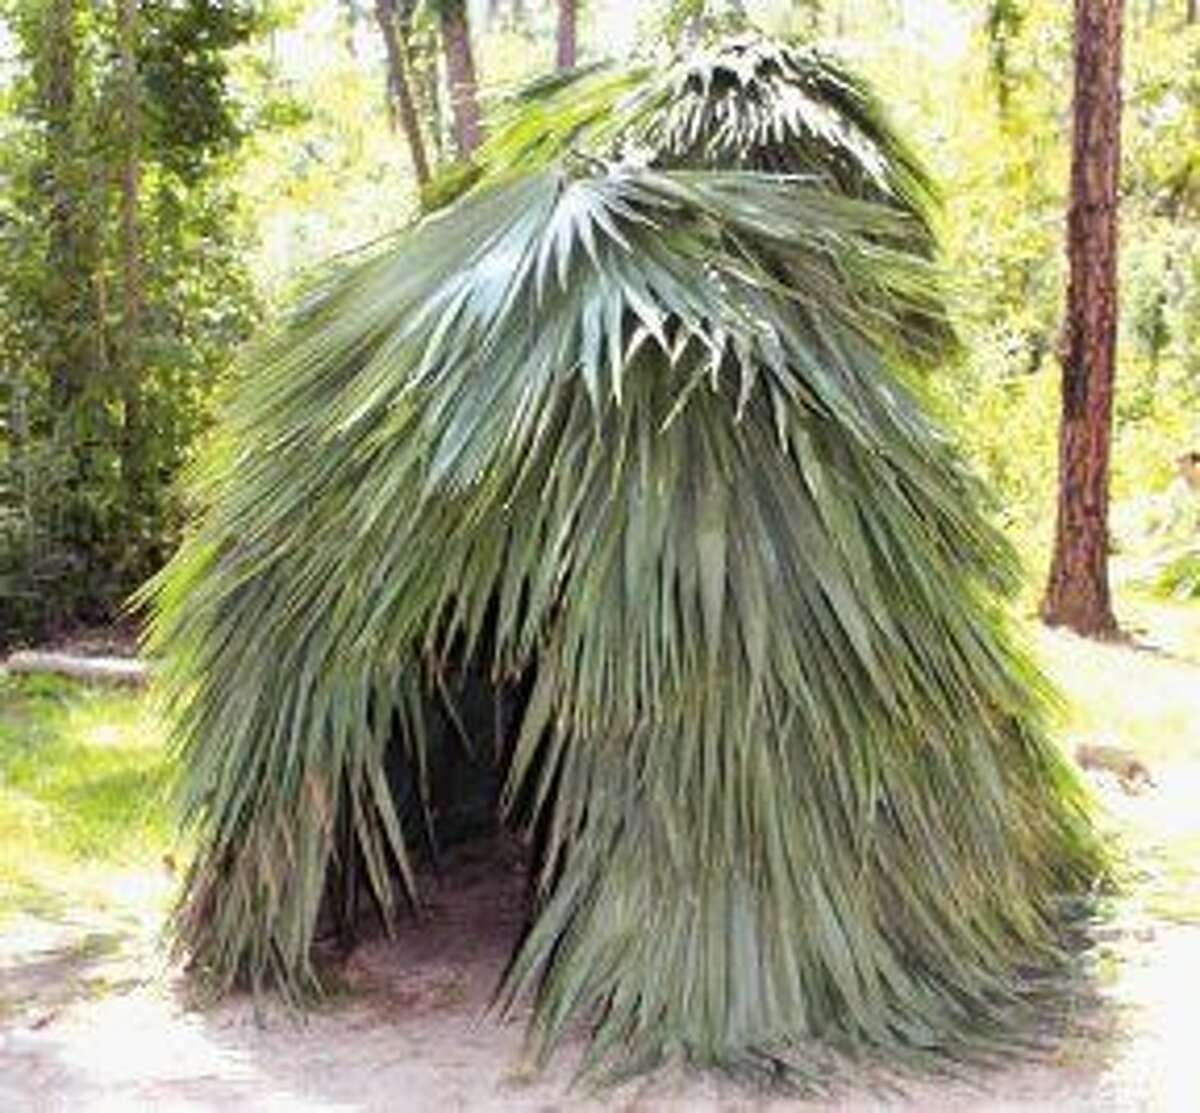 Akokisa sweat lodge, used for both health and religious purposes.